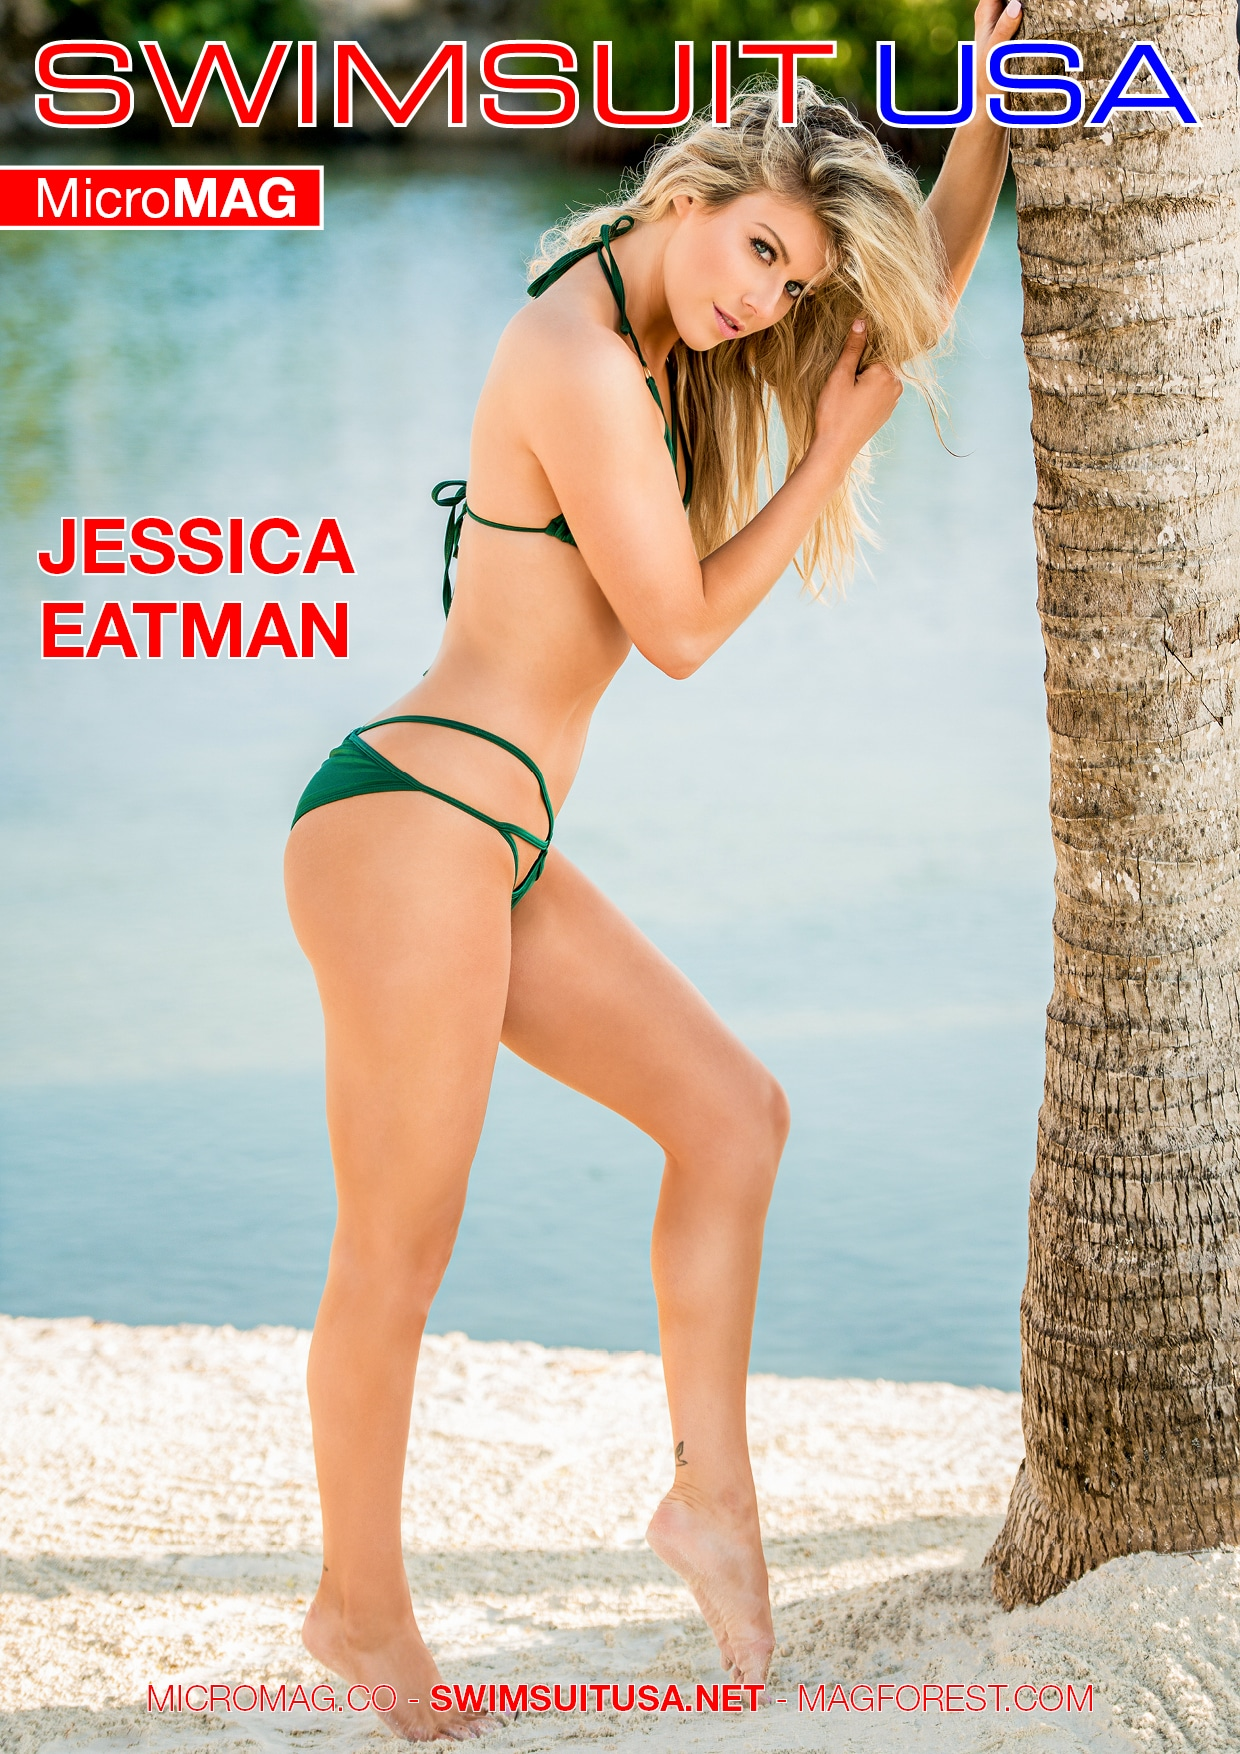 Swimsuit Usa Micromag – Jessica Eatman – Issue 4